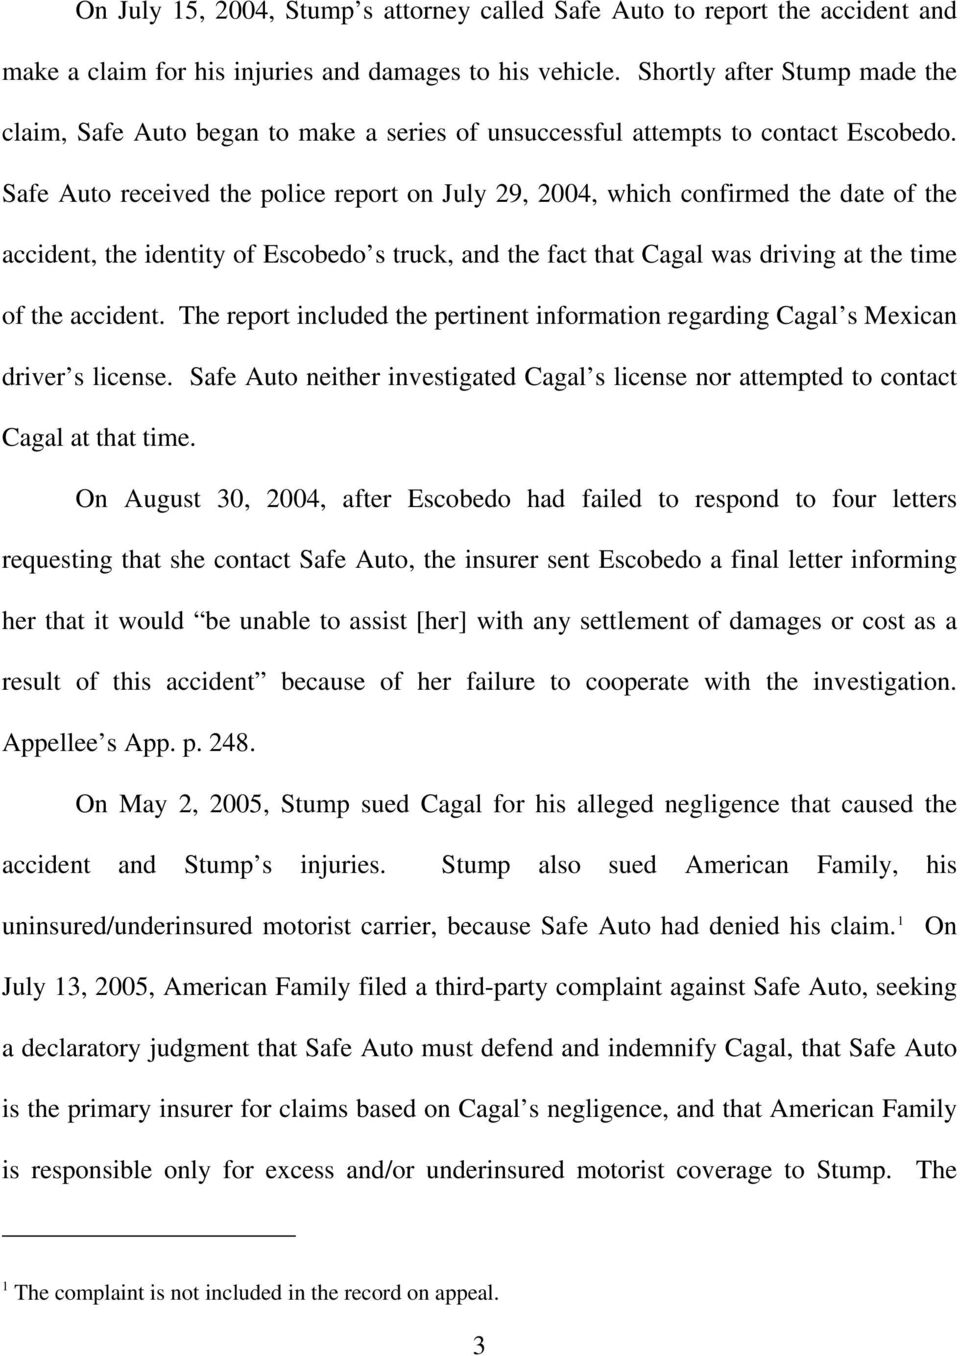 Safe Auto received the police report on July 29, 2004, which confirmed the date of the accident, the identity of Escobedo s truck, and the fact that Cagal was driving at the time of the accident.